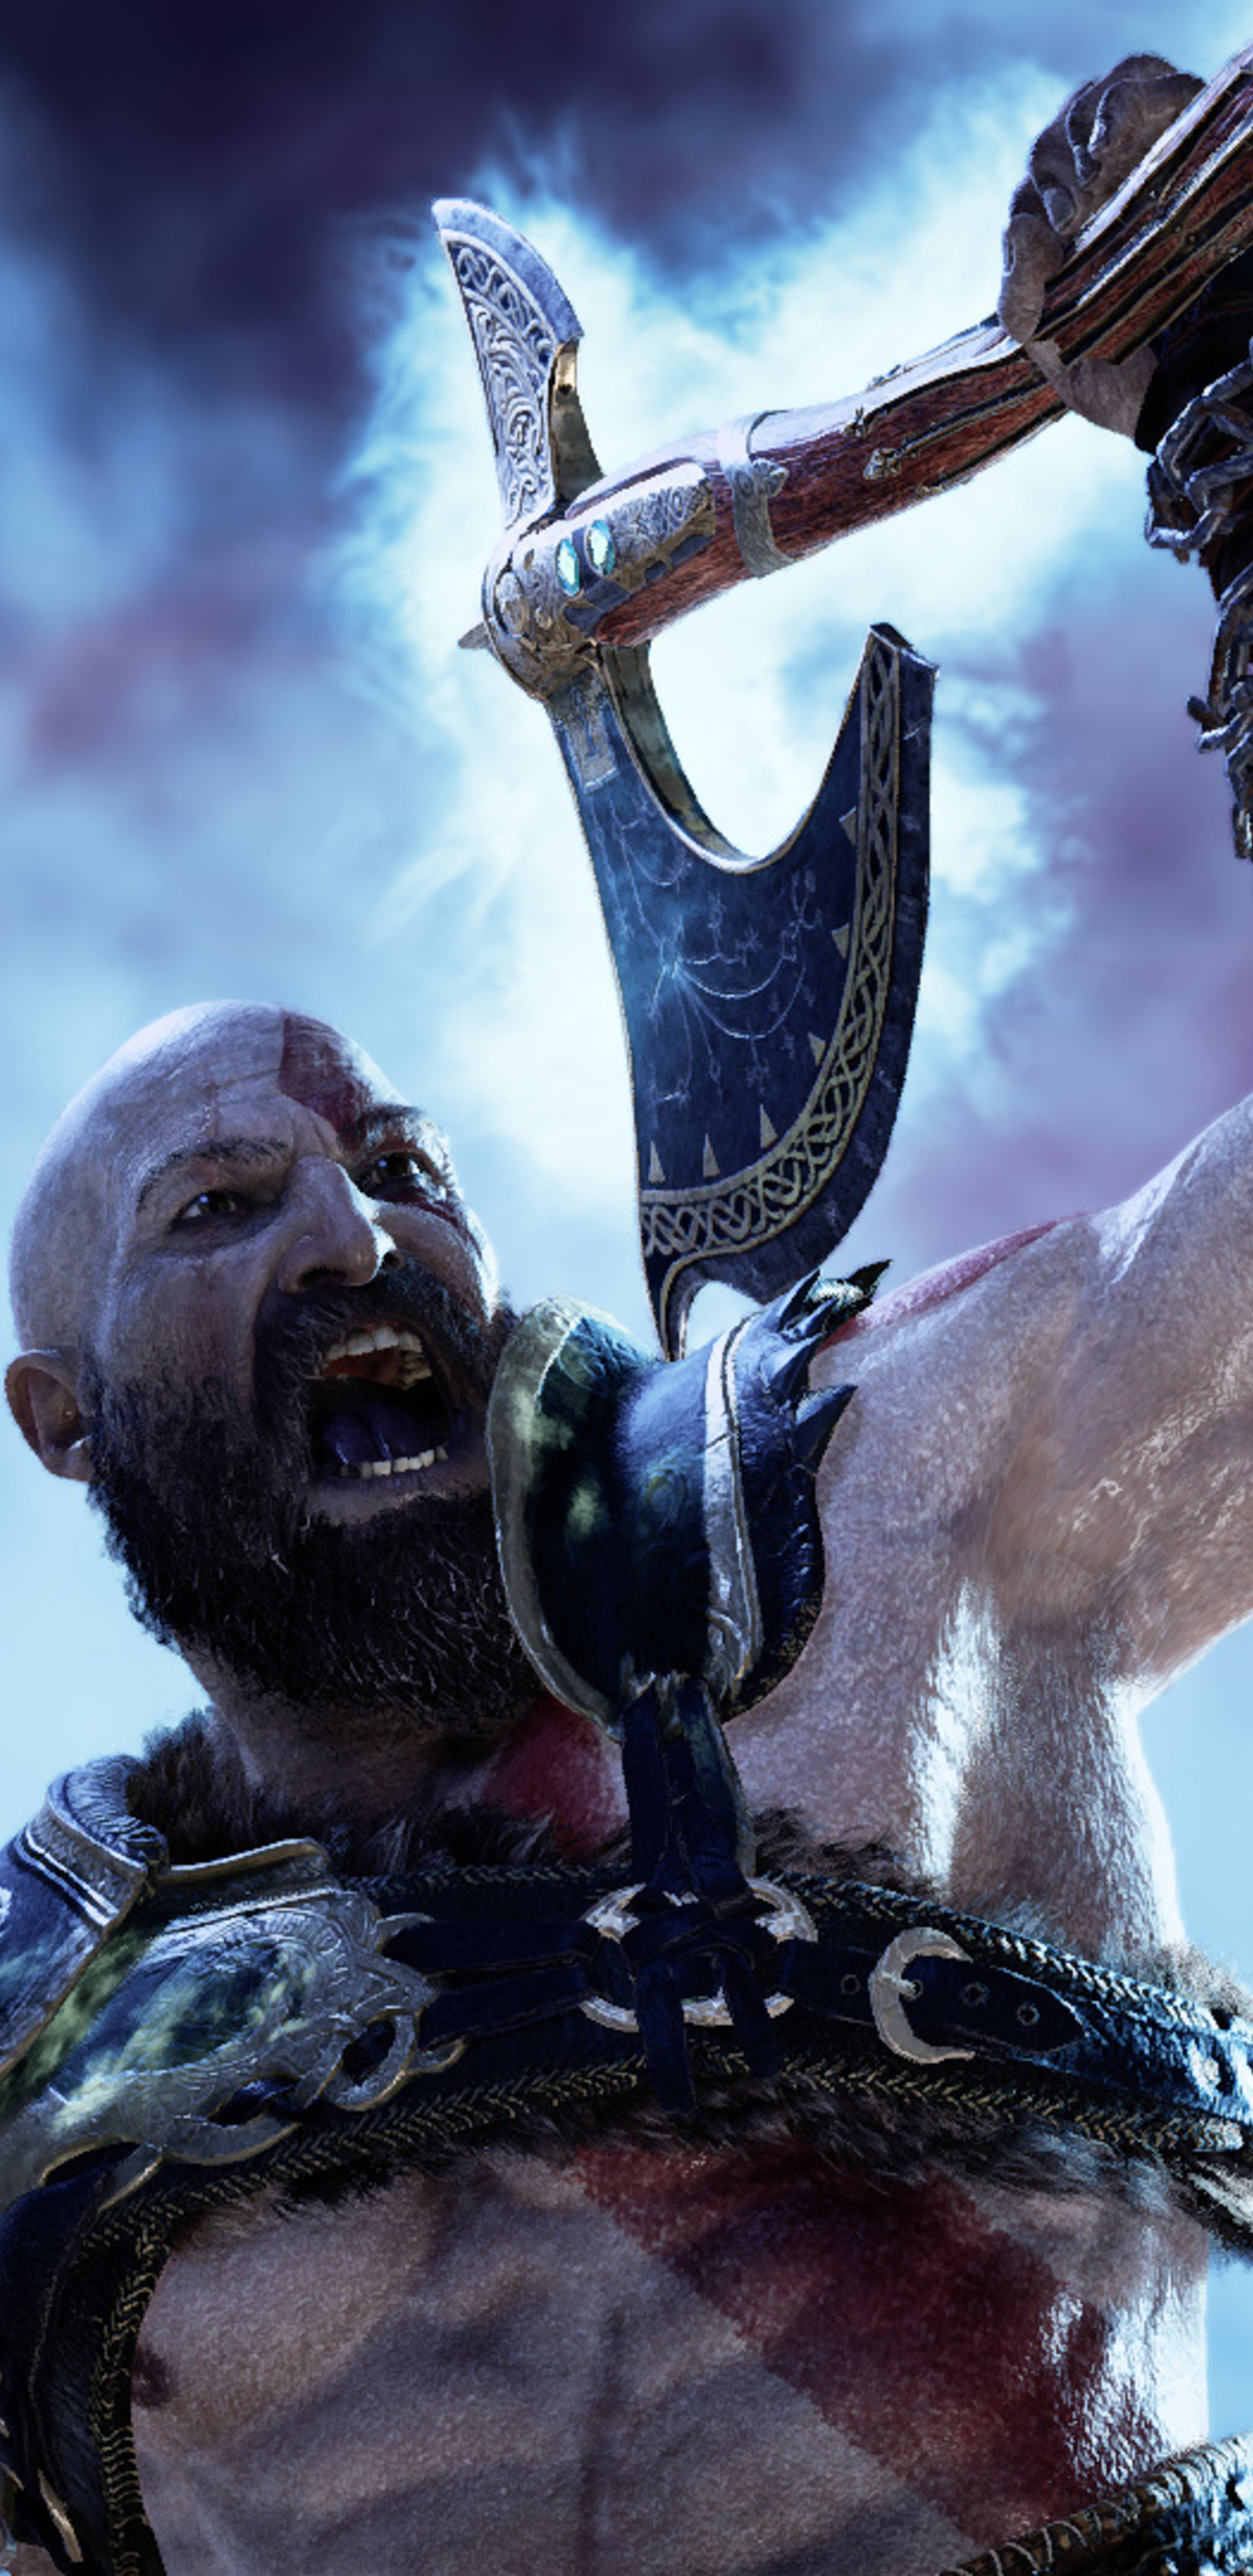 kratos-god-of-war-art-rp.jpg